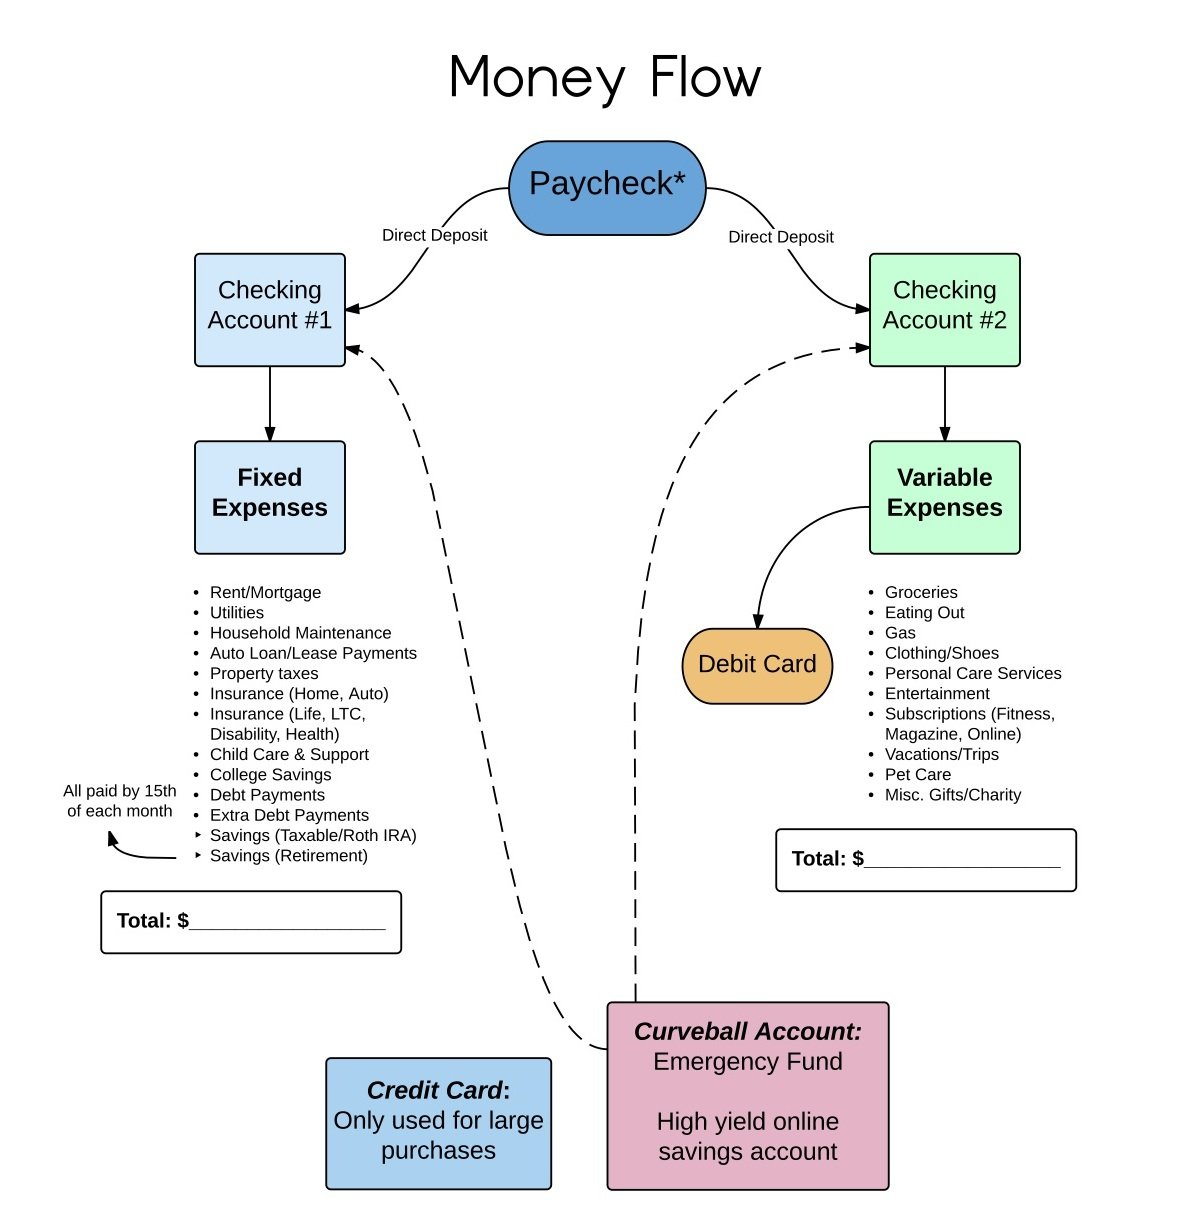 cash management workflow diagram the systems thinker step Cash Management Workflow Diagram cash management & technologies for the